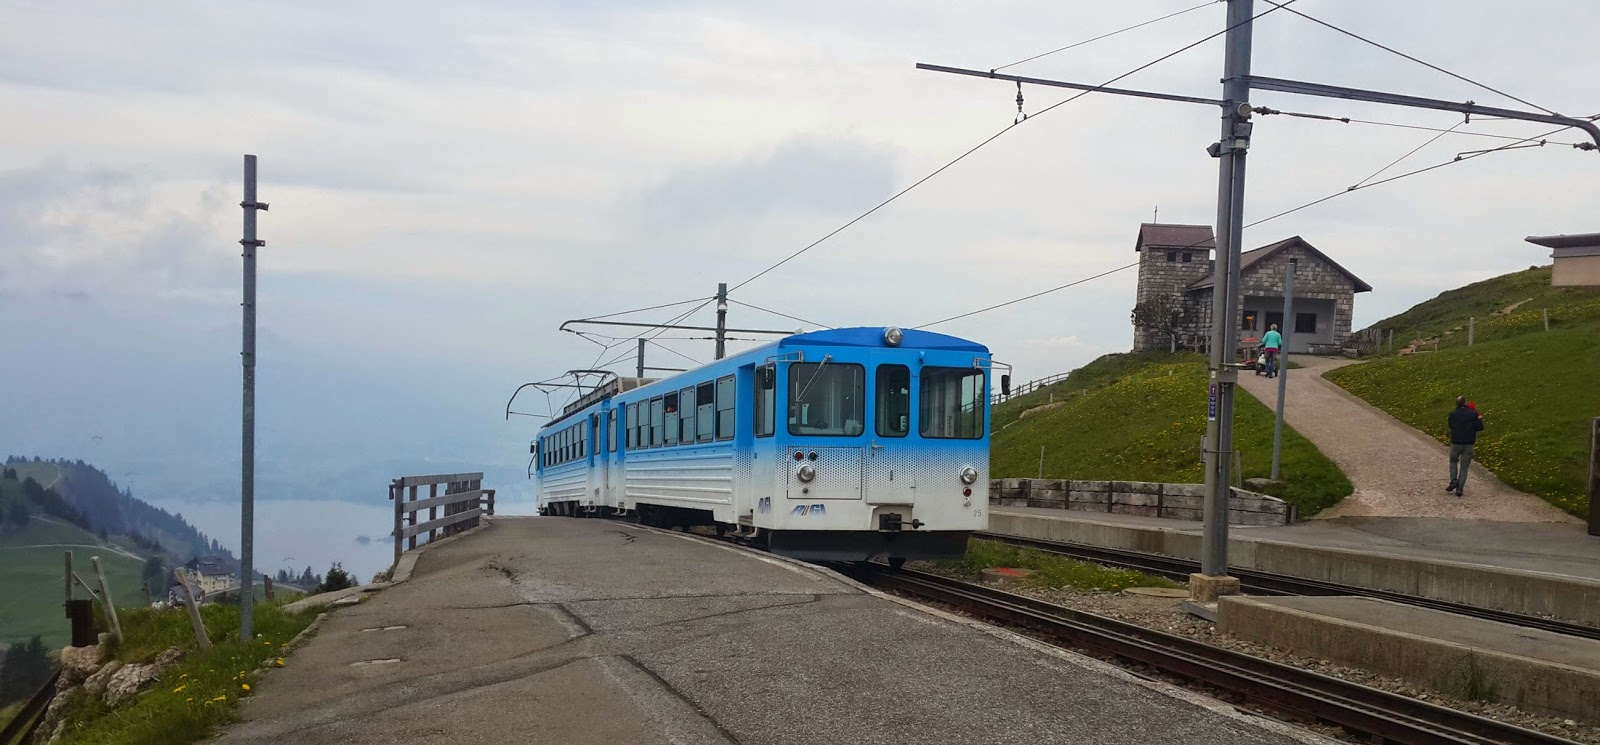 How to go to Mt. Rigi from Lucerne